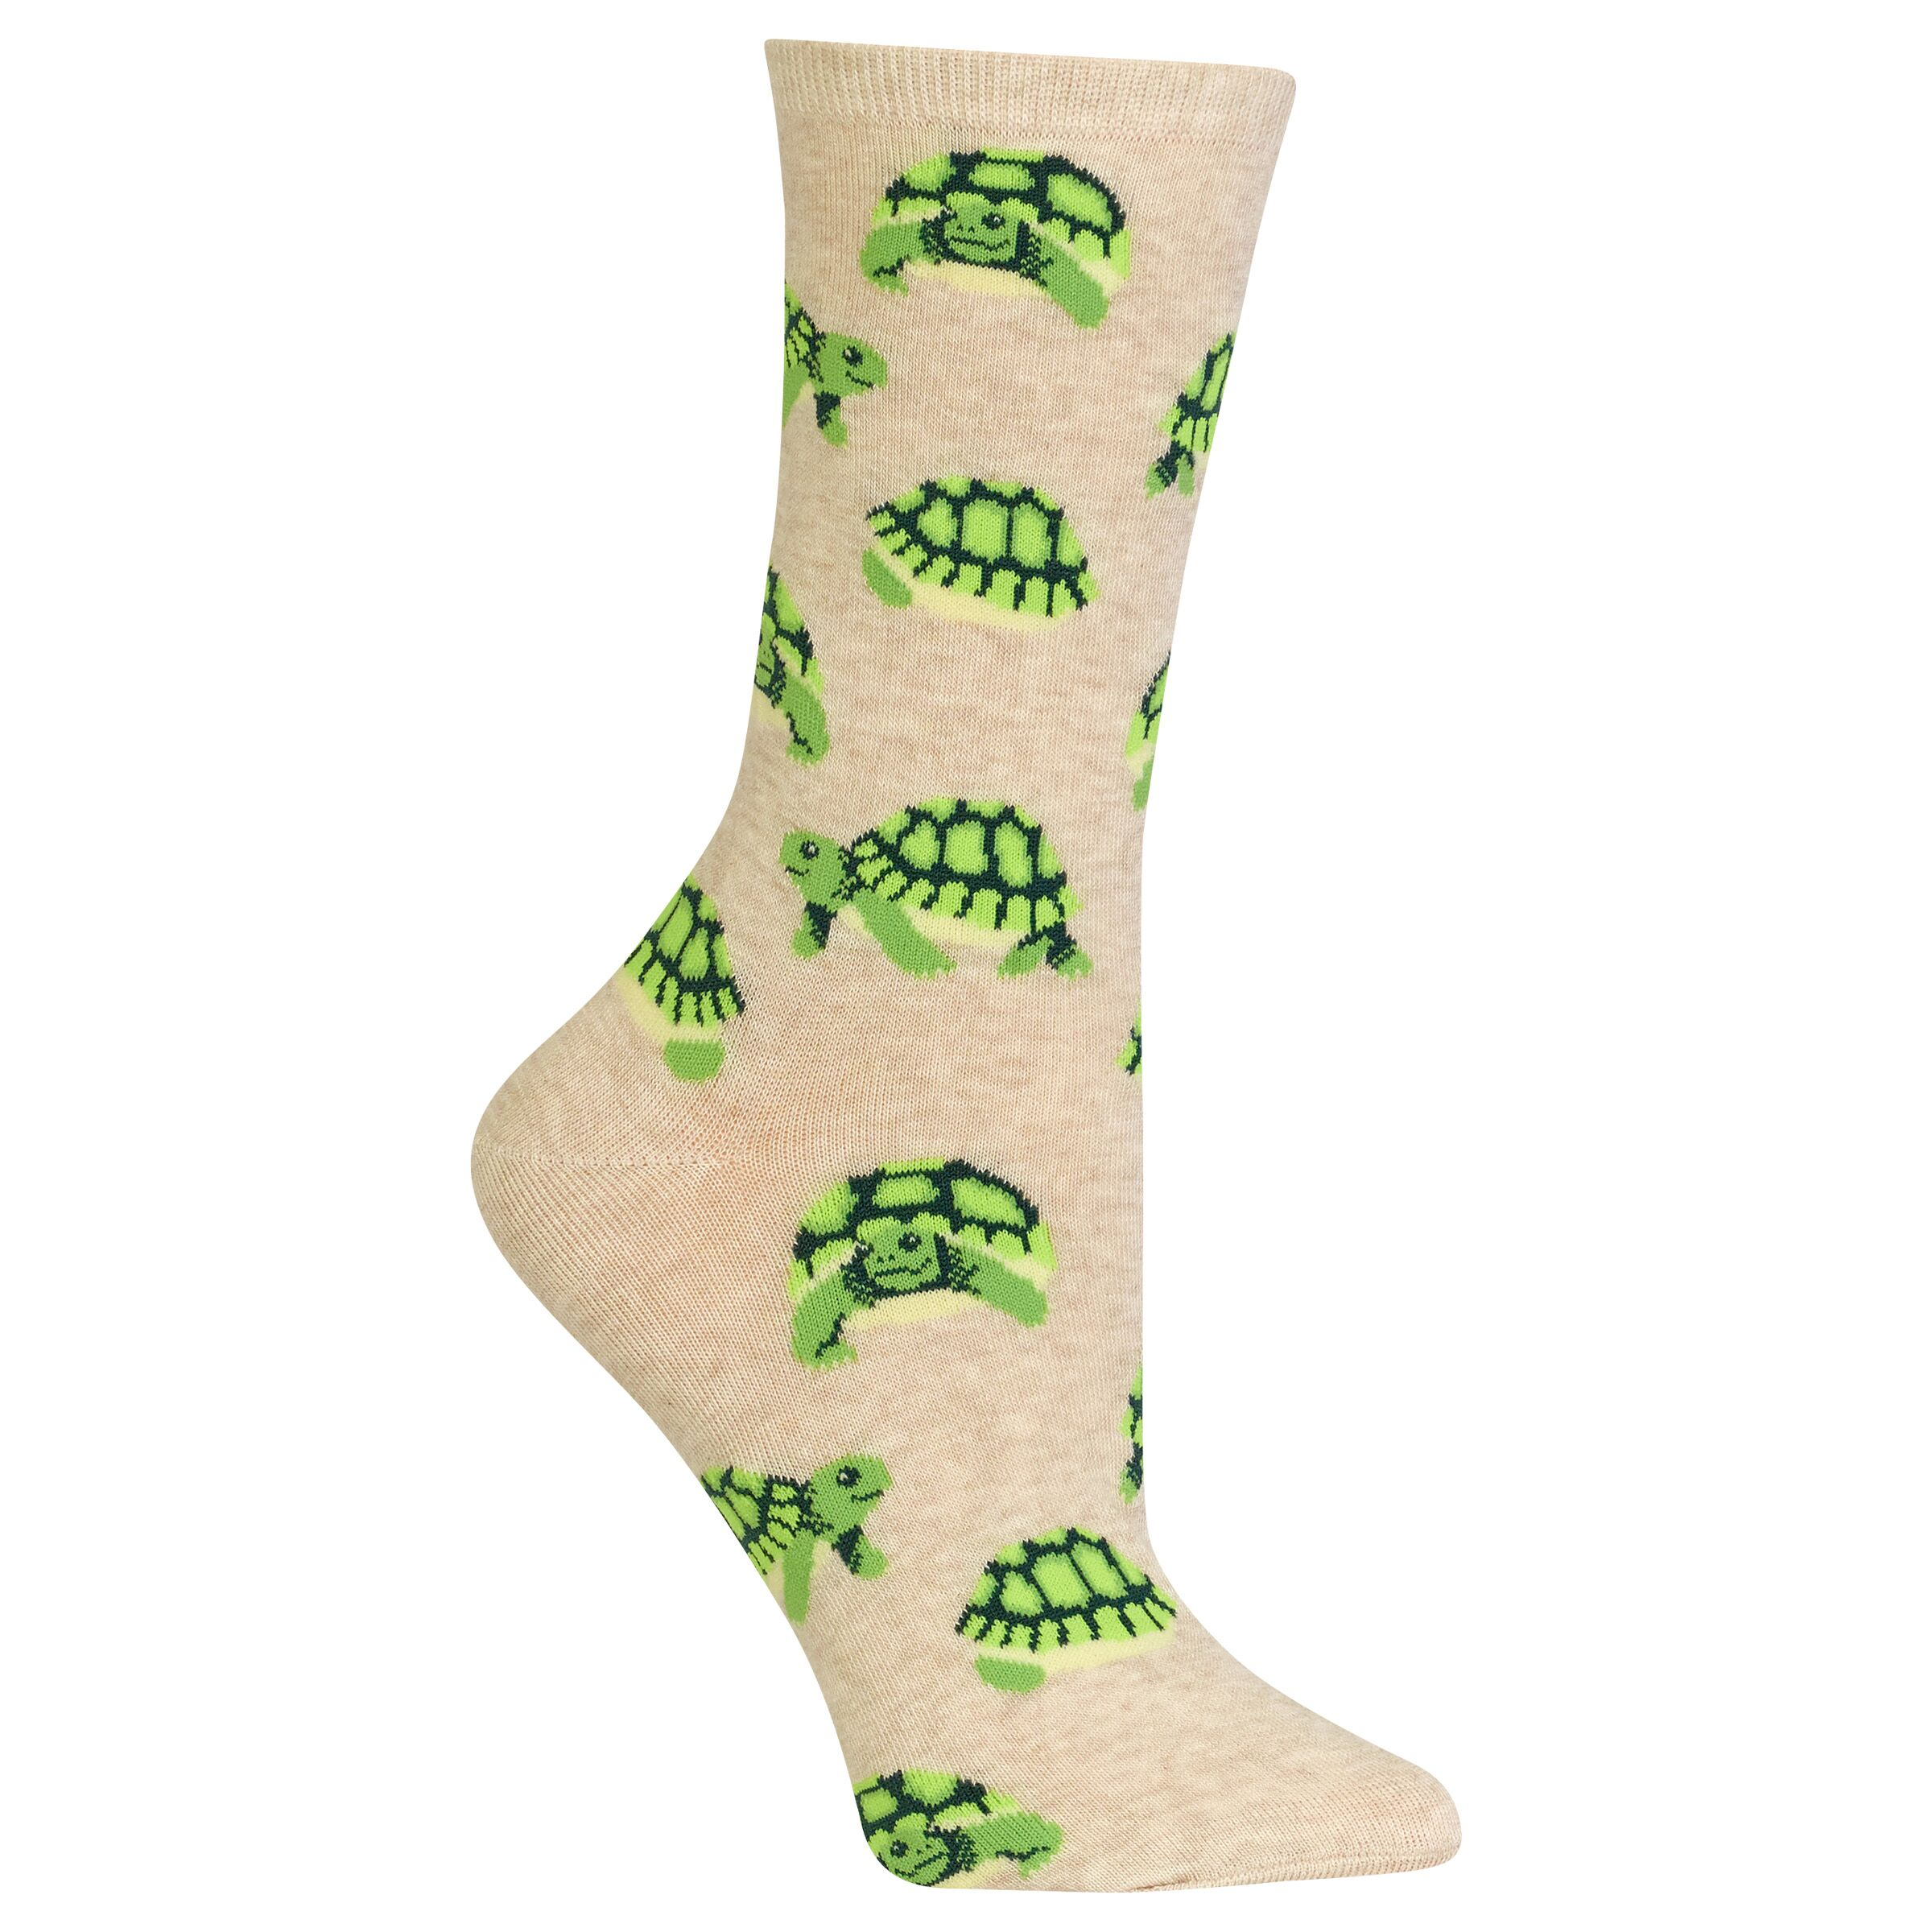 5869f57b87 Turtle Hot Sox Trouser Crew Socks Natural New Women's 9-11 Slow Poke Fashion